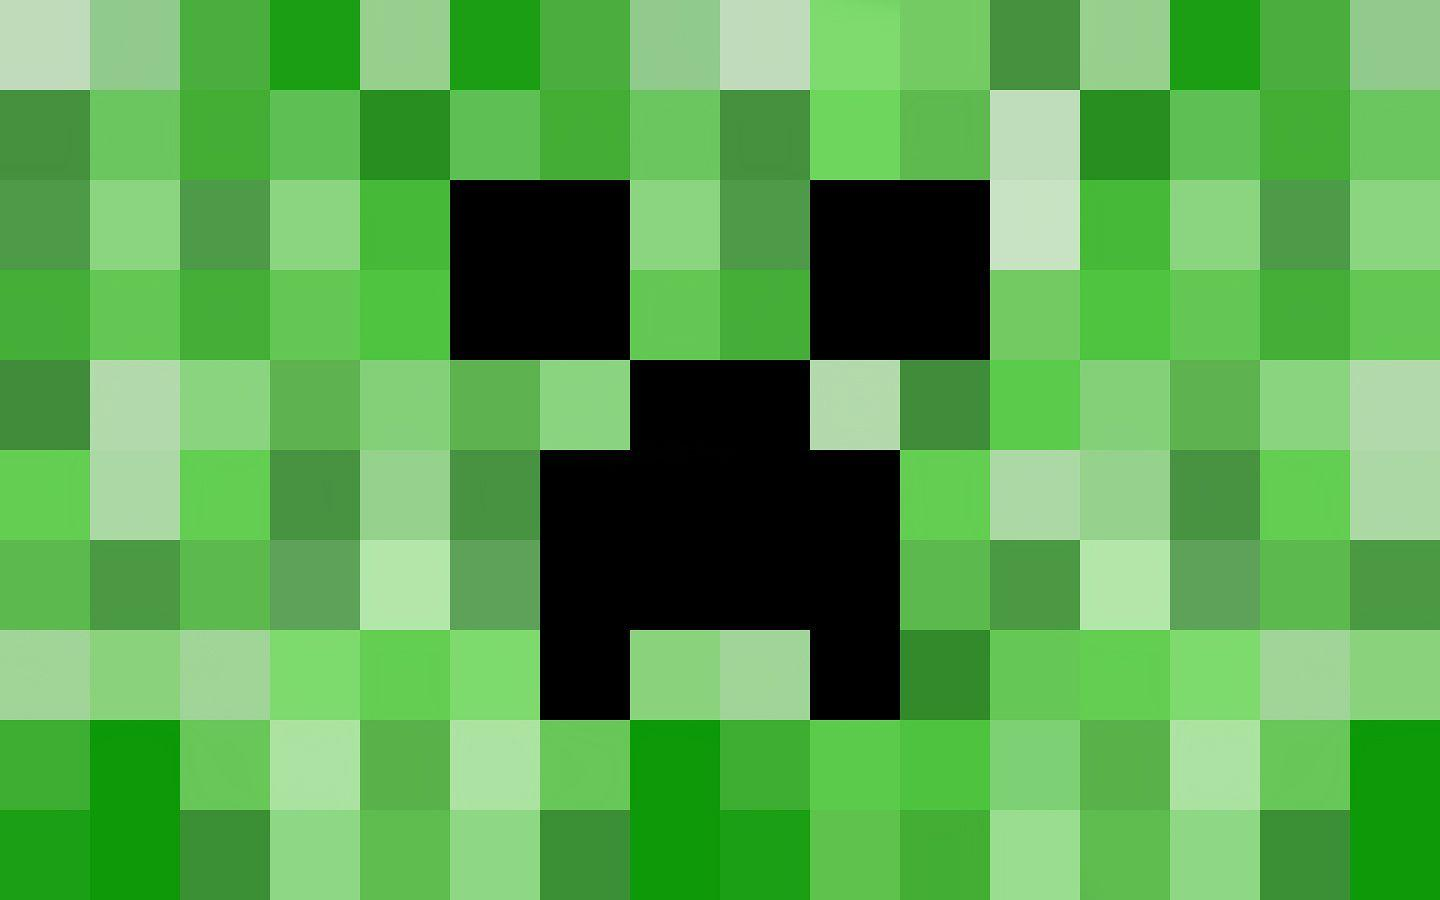 Minecraft Wallpapers For Walls 1440x900